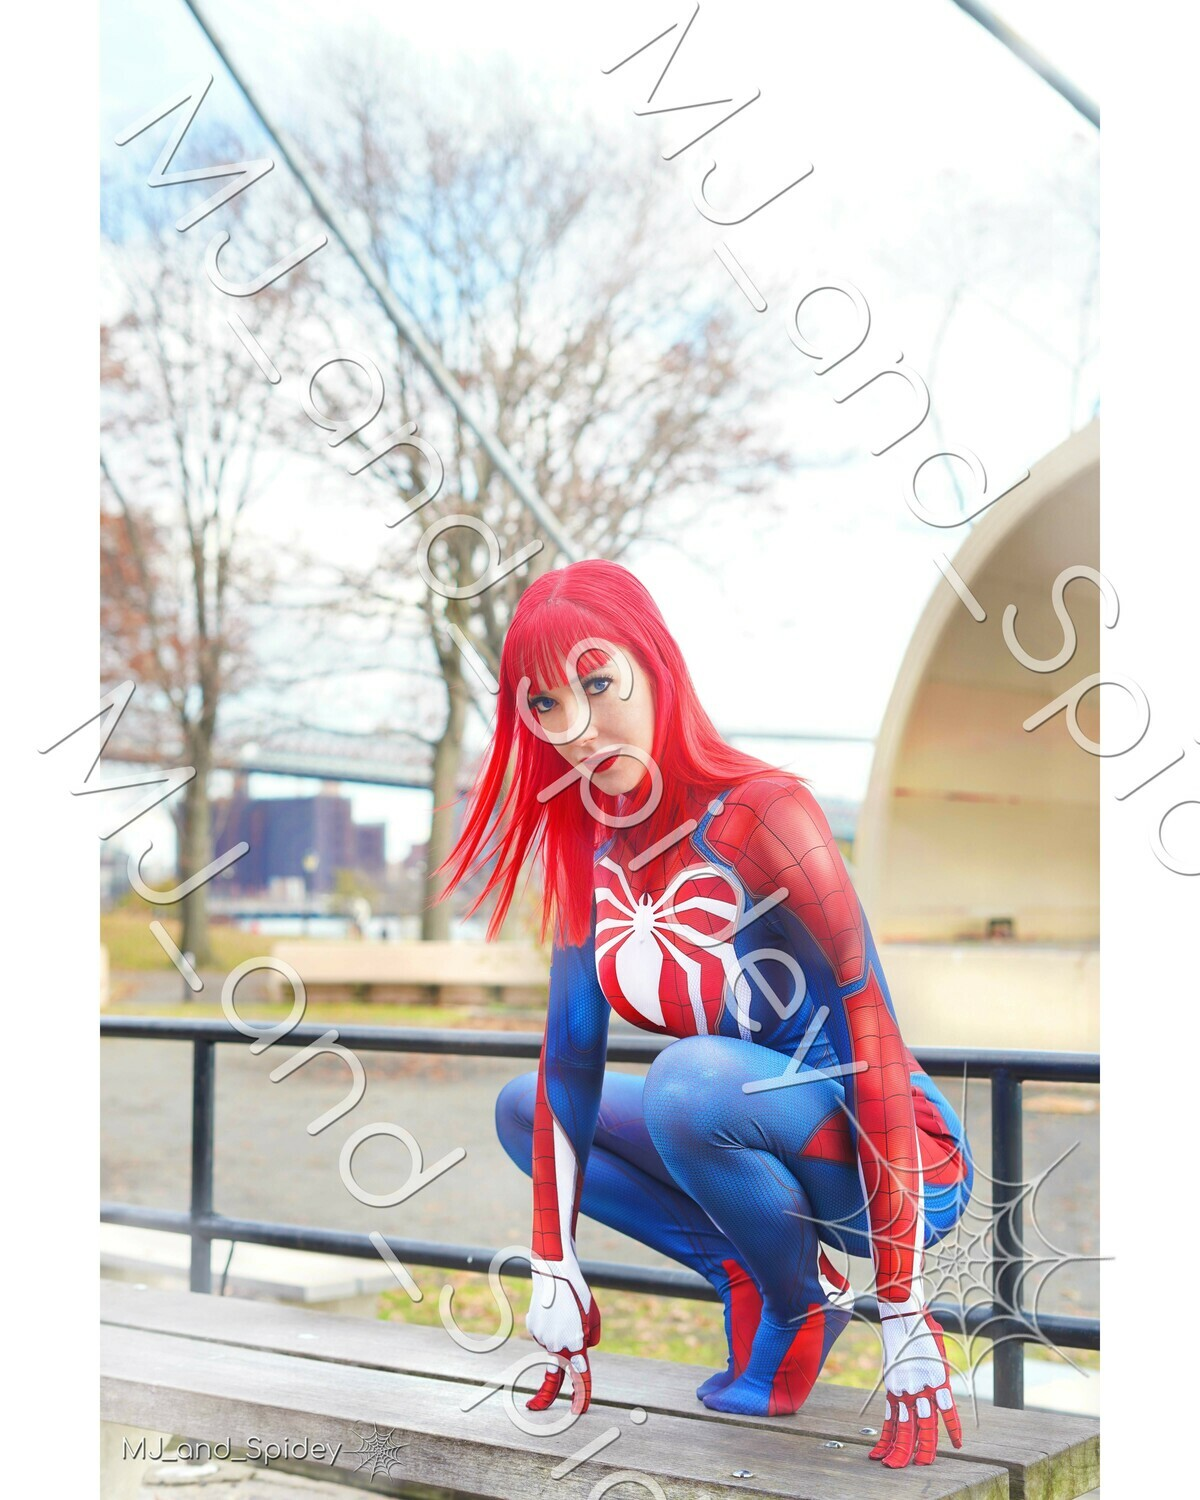 Marvel - Spider-Man - Mary Jane Watson - PS4 Insomniac Spider-Suit No. 5 - Digital Cosplay Image (@MJ_and_Spidey, MJ and Spidey, Comics)